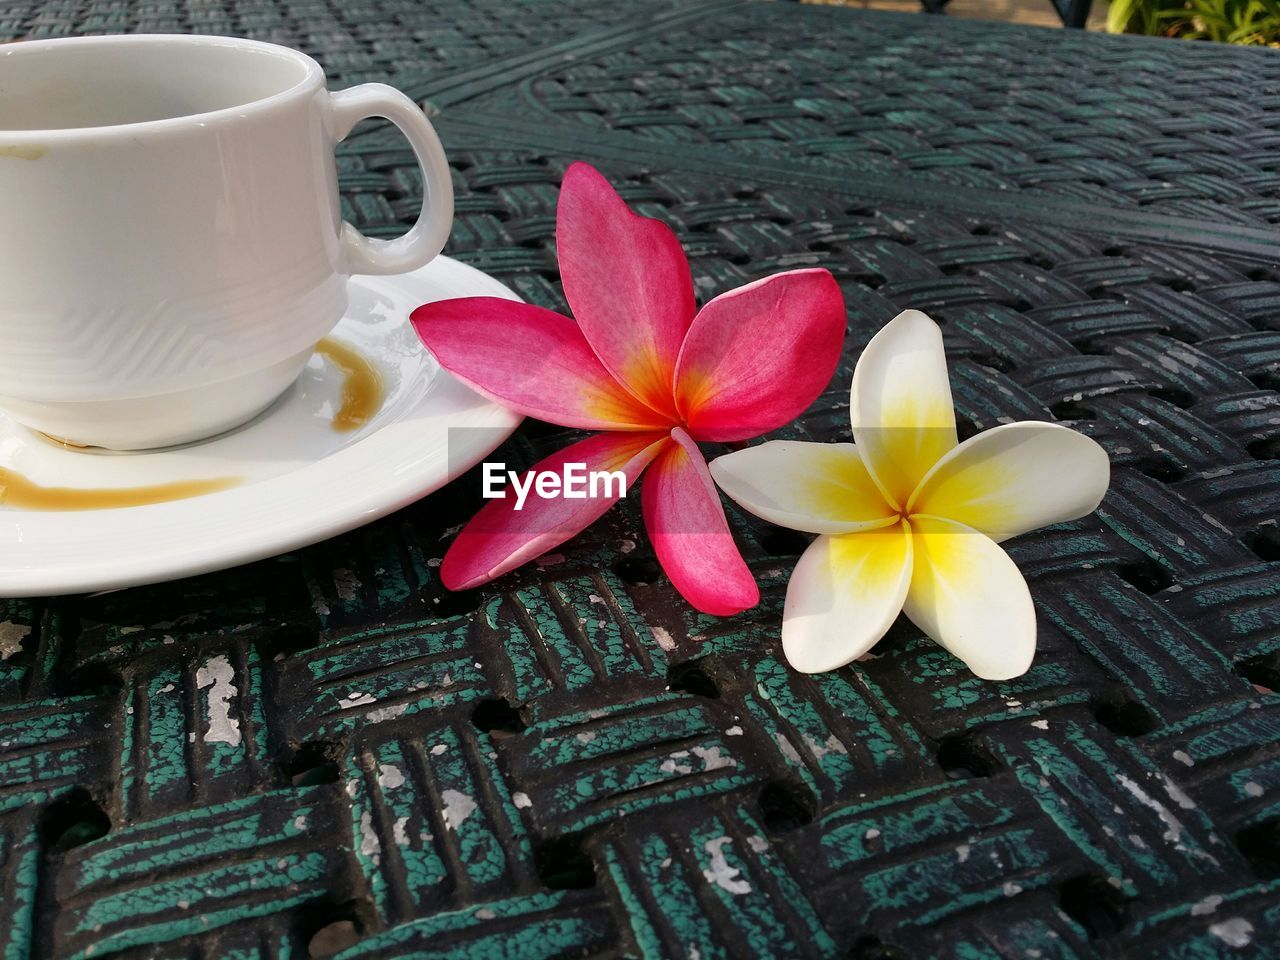 Frangipani flowers by coffee cup on table